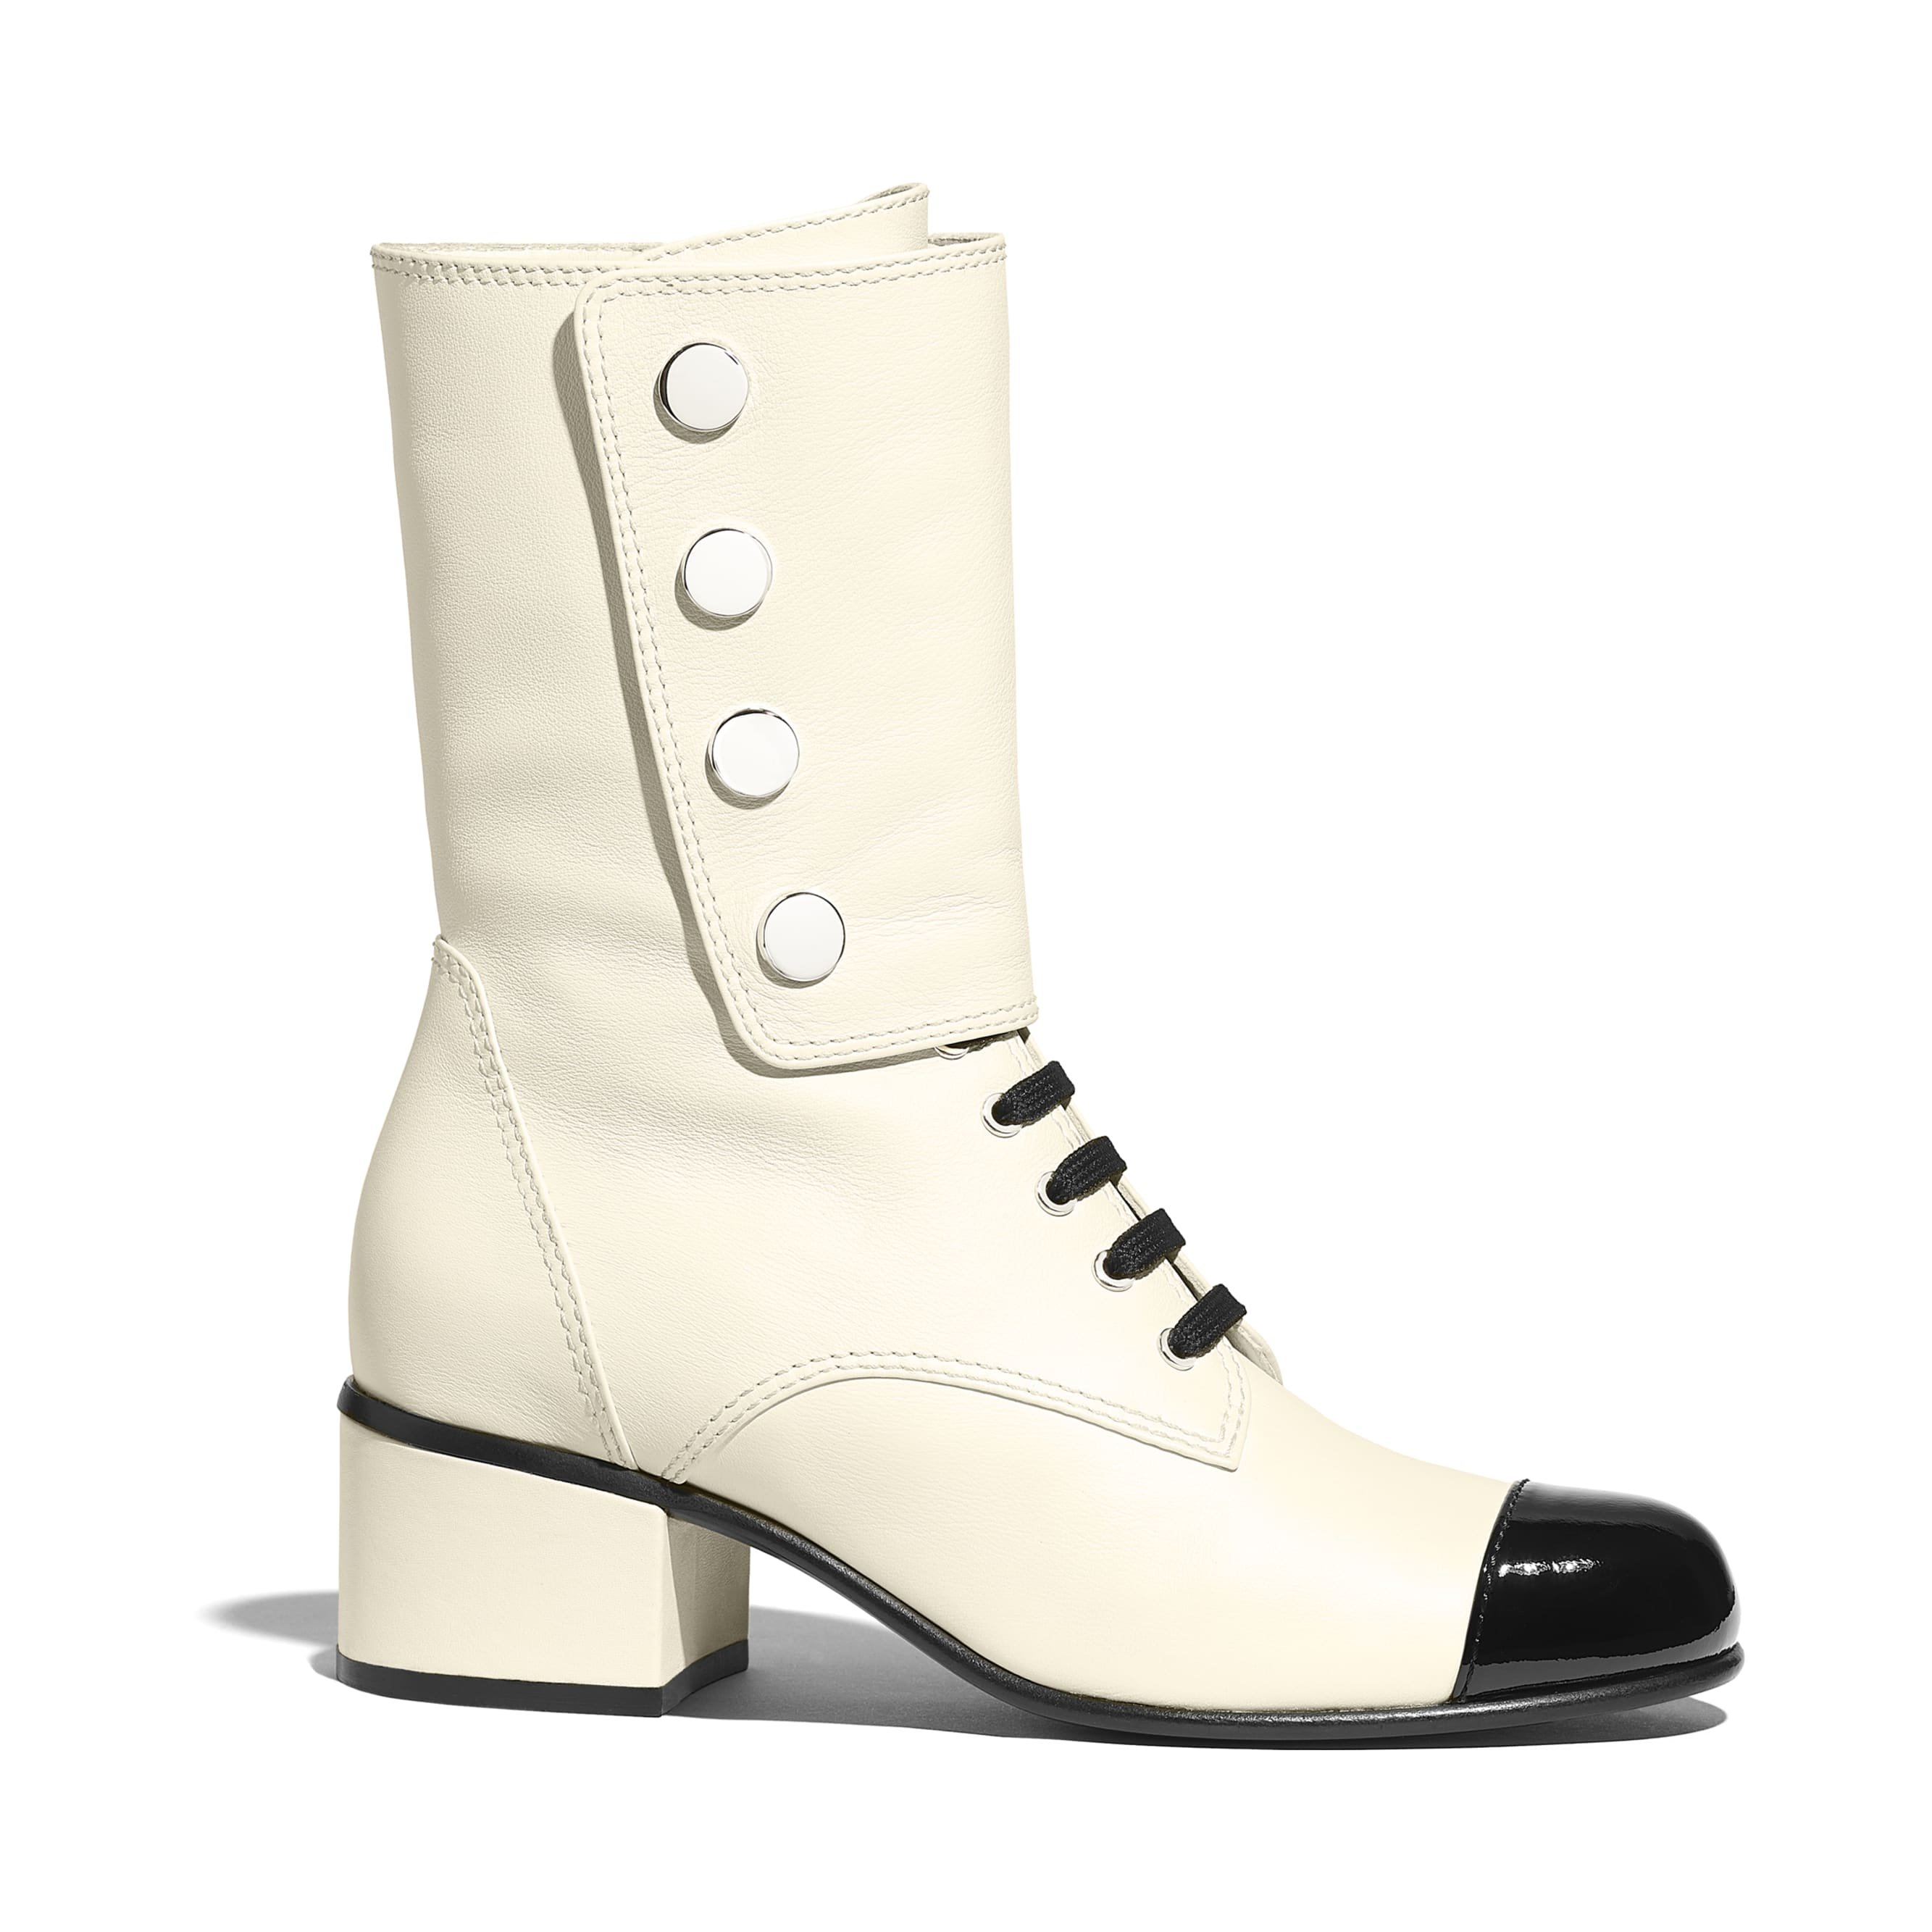 Ankle Boots - Ivory & Black - Calfskin & Patent Calfskin - Default view - see standard sized version